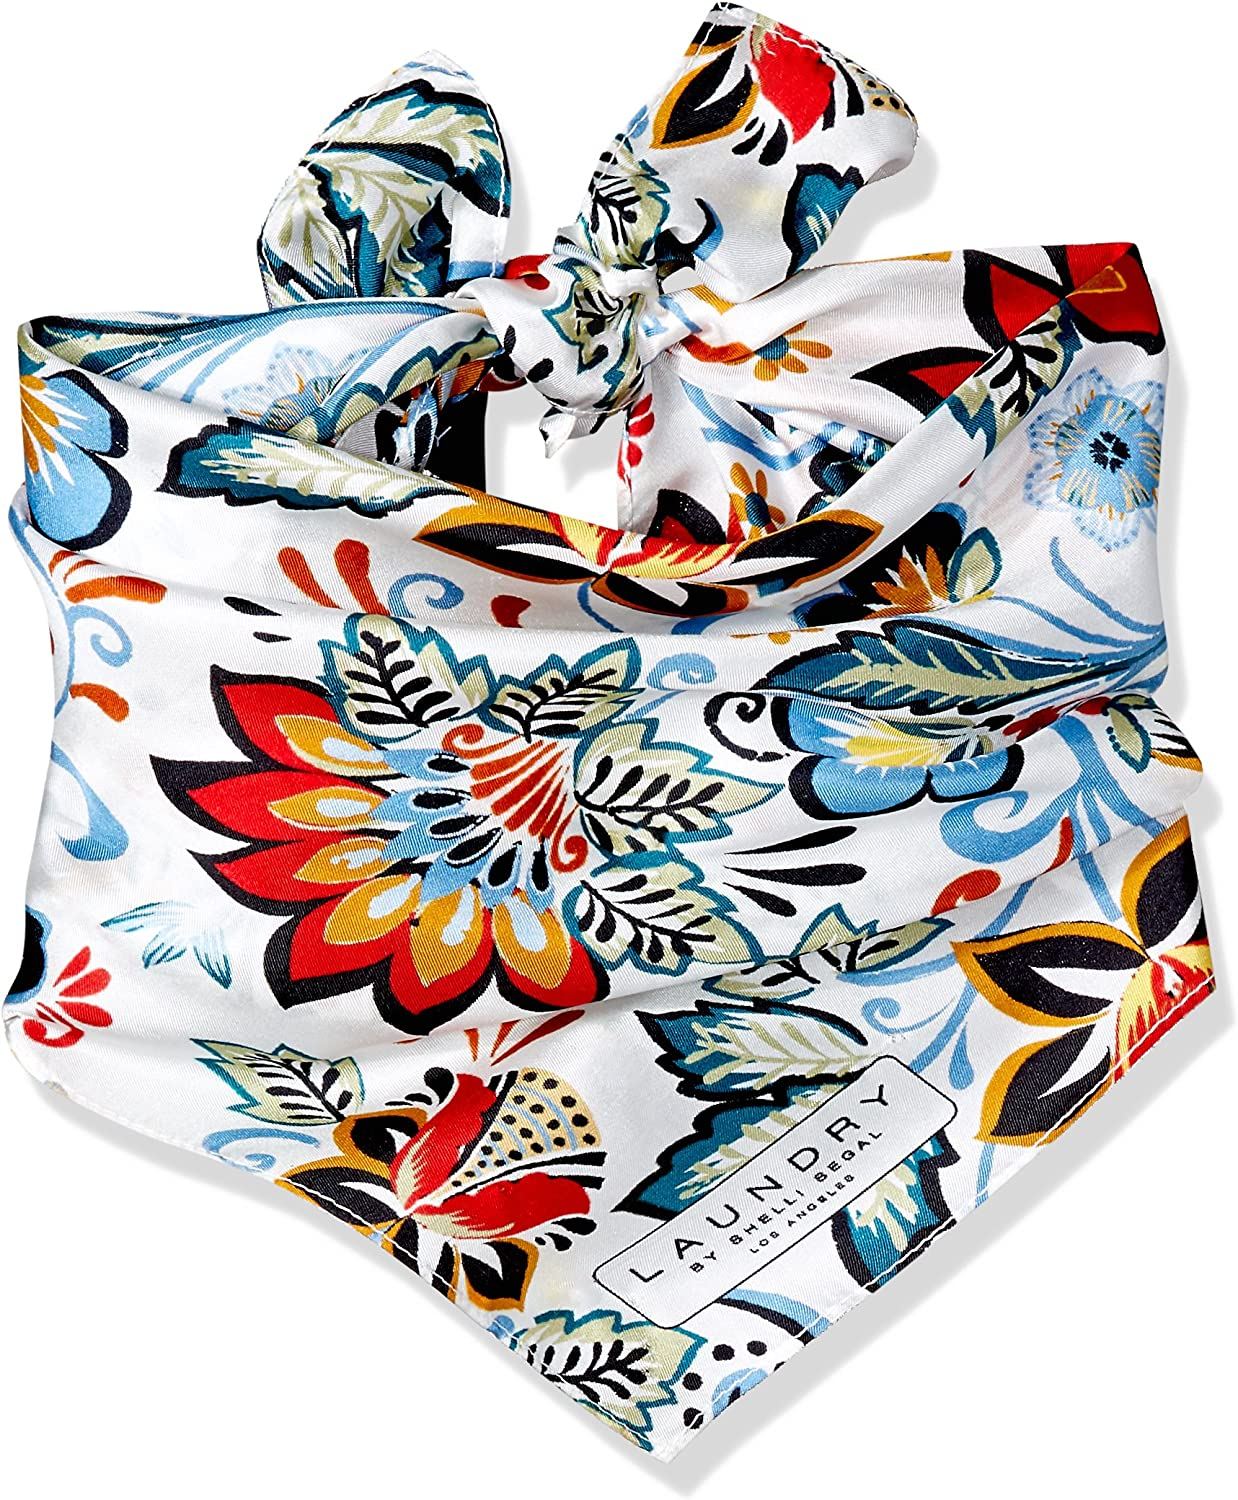 LAUNDRY BY SHELLI SEGAL Women's Boho Floral Silk Square Scarf, Optic White, One Size